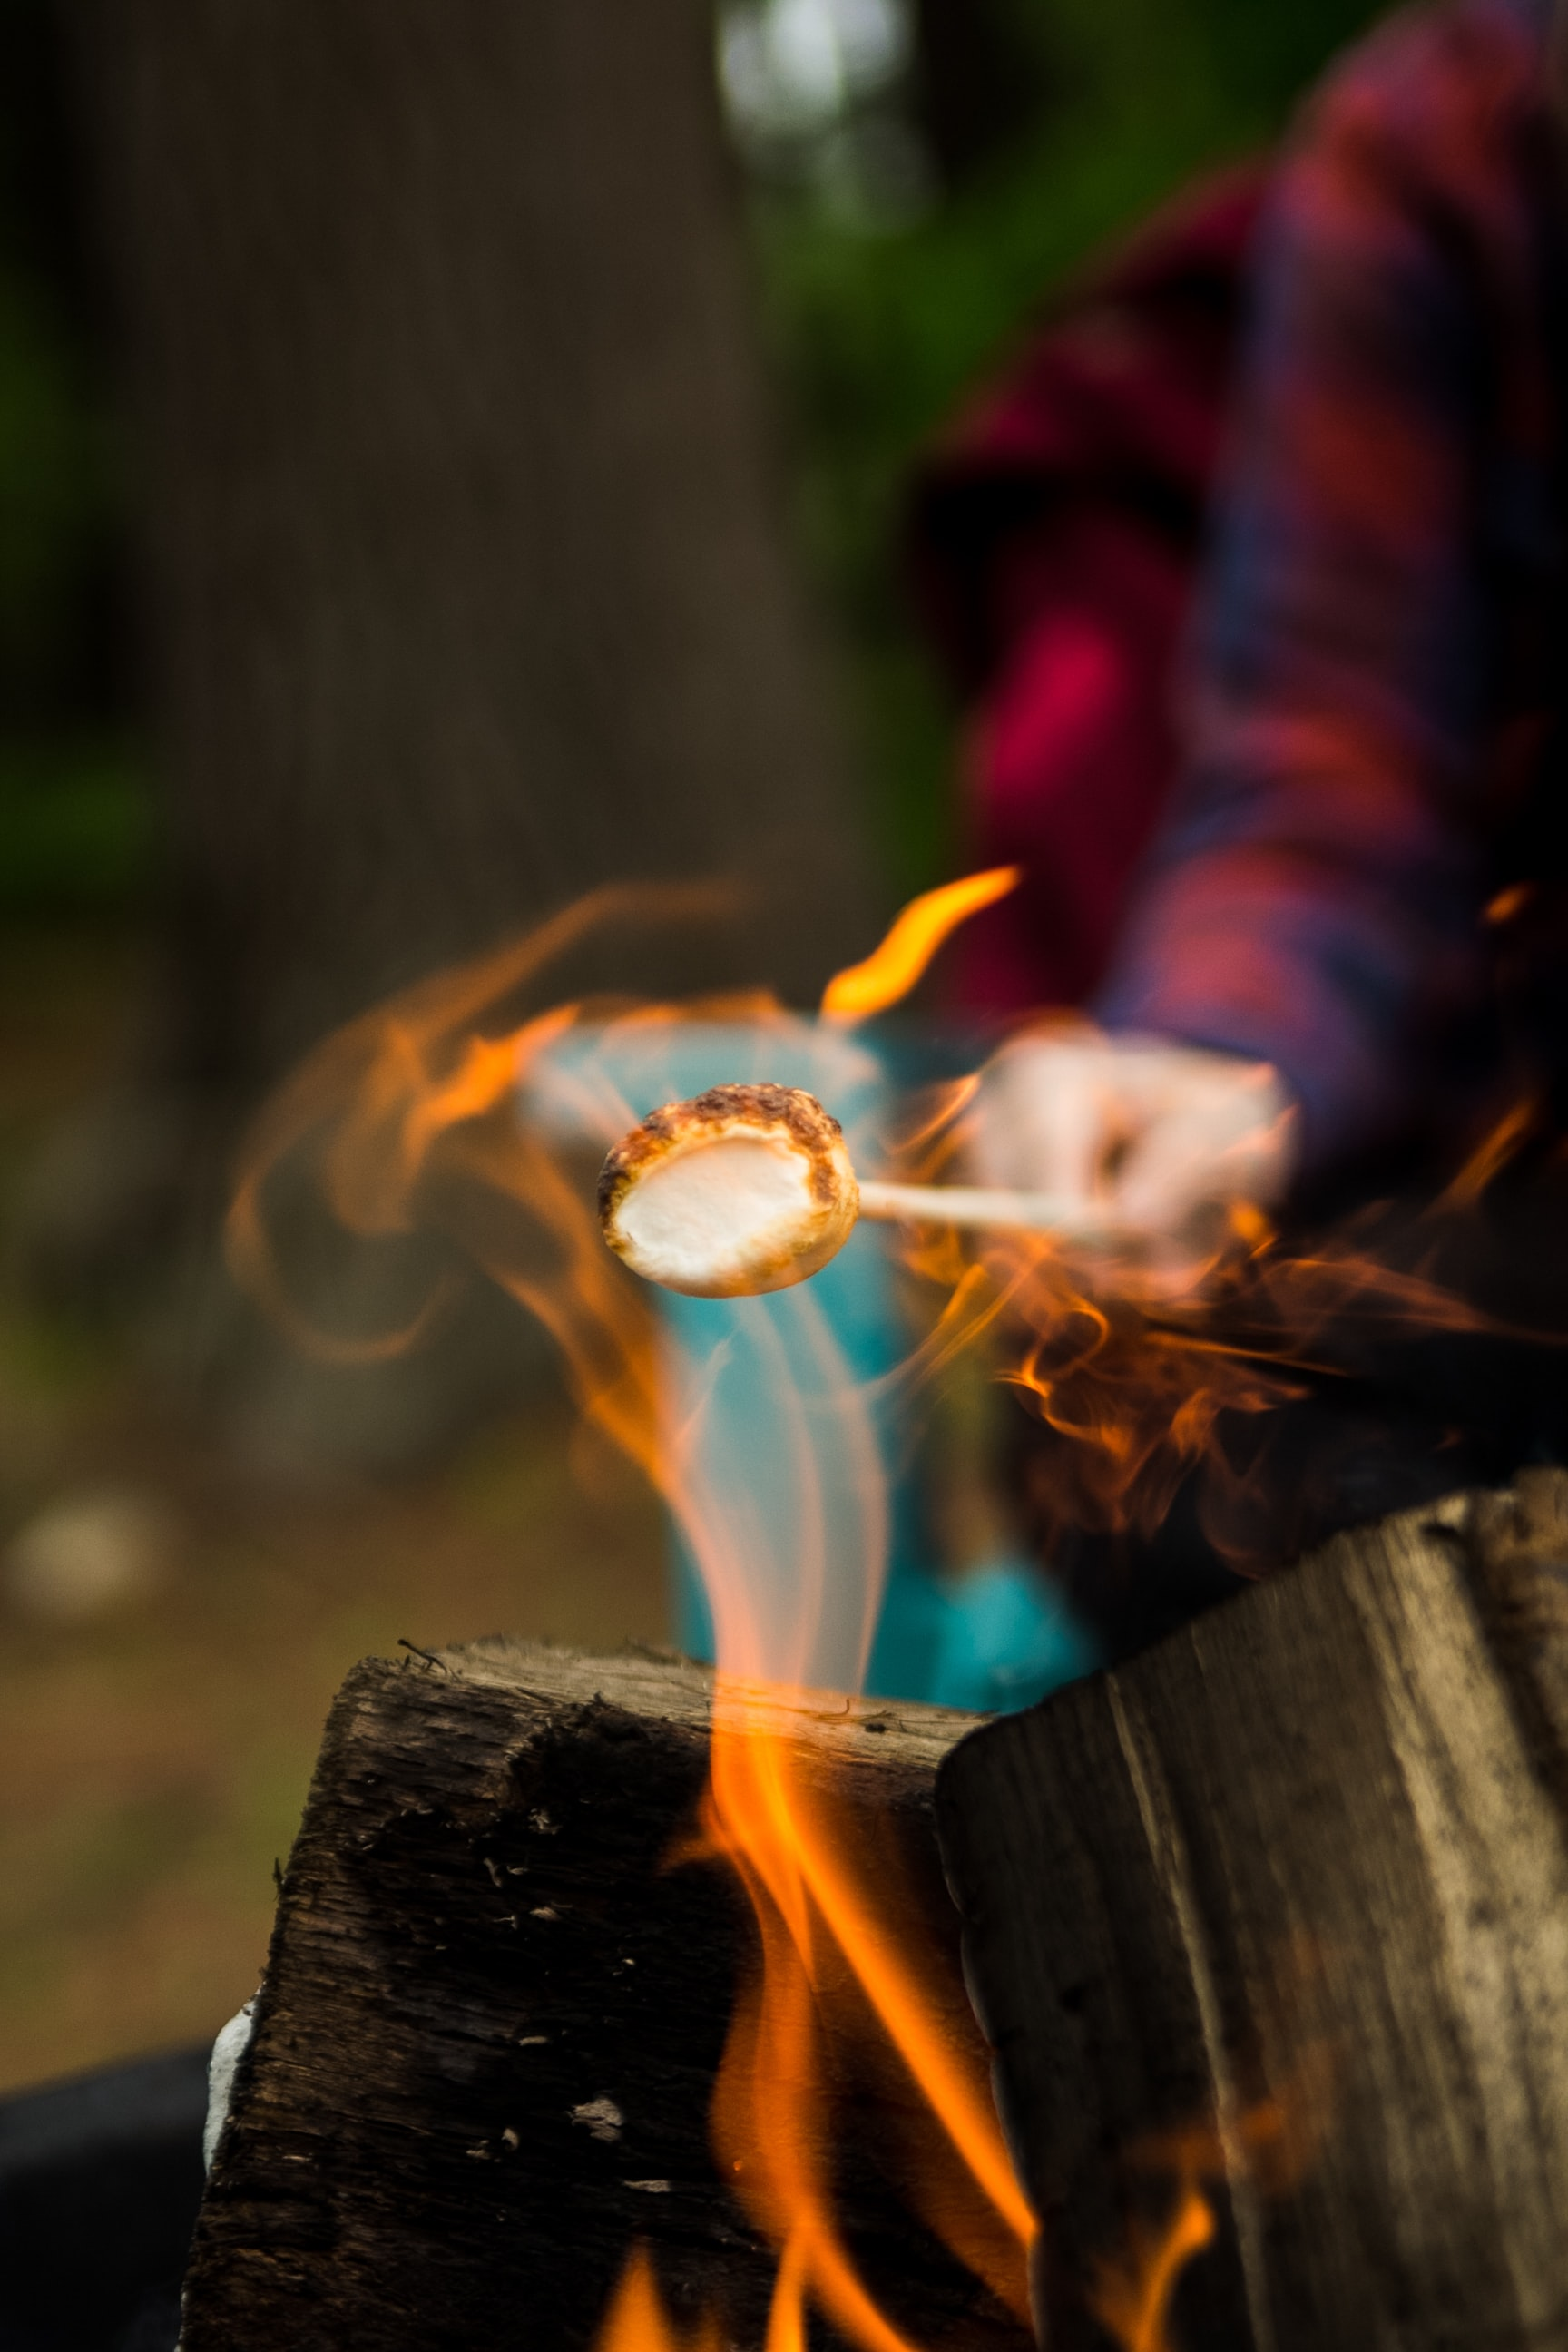 A person in plaid holding a marshmallow out over a fire to roast